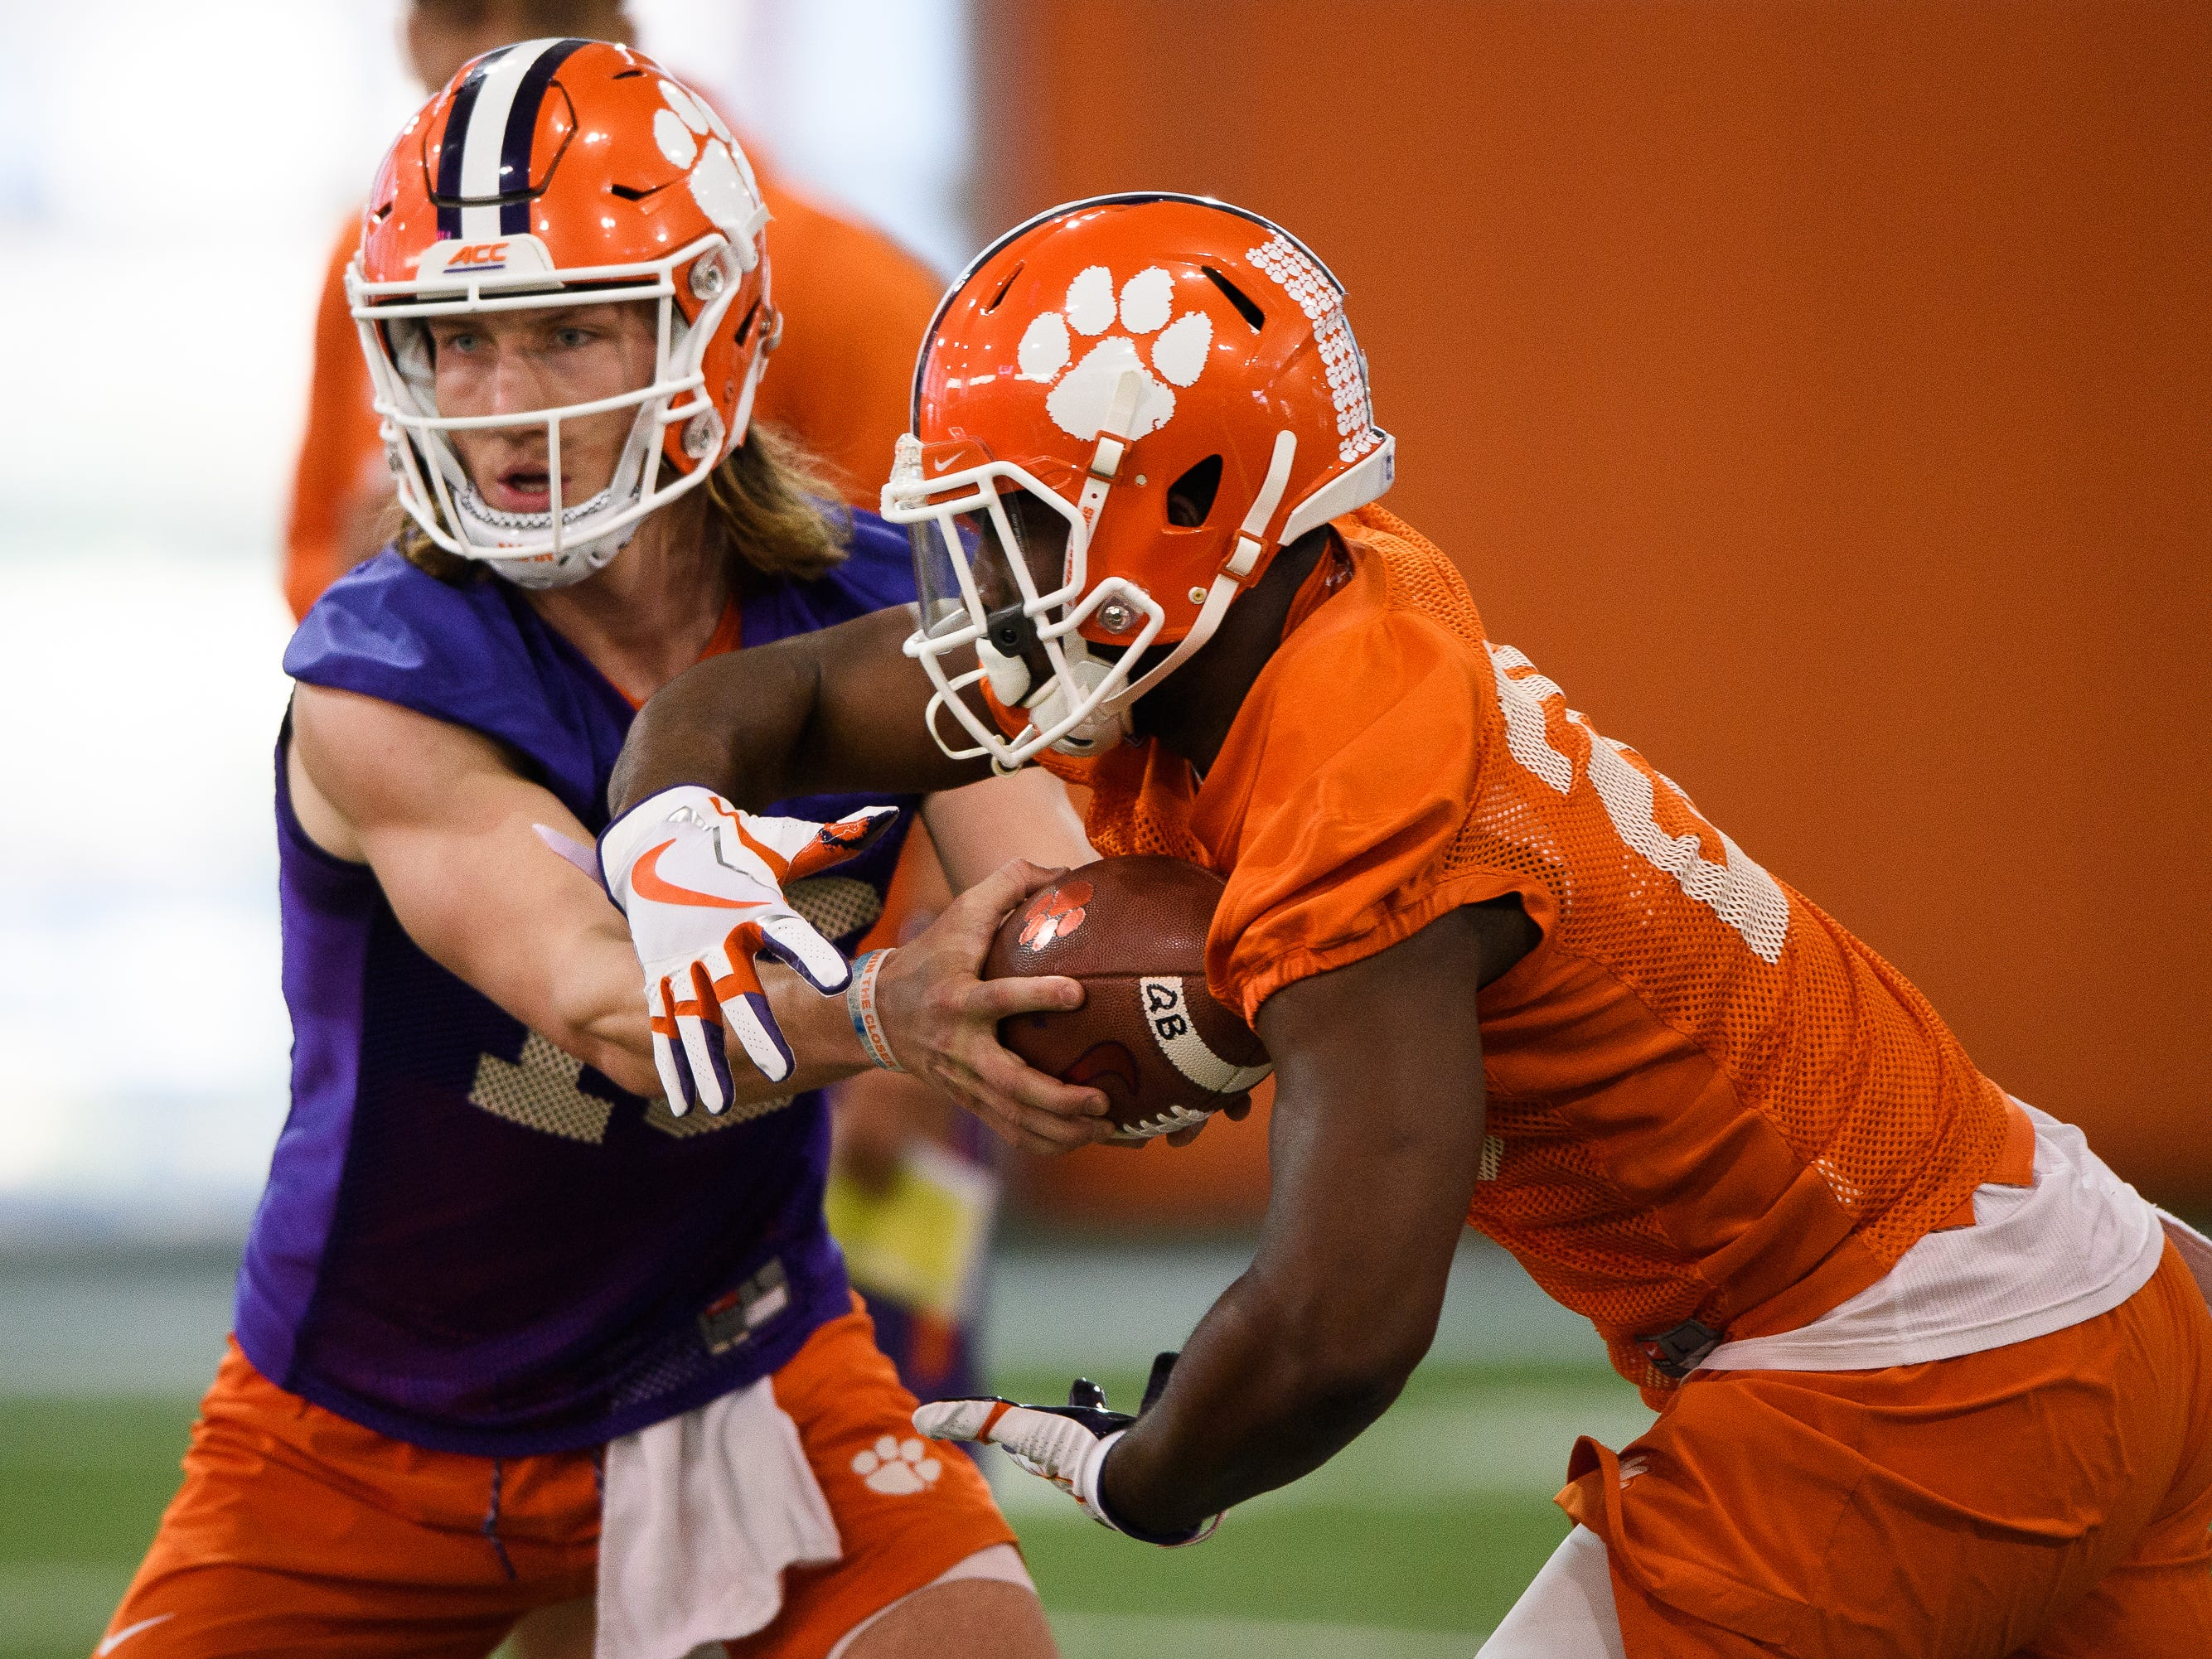 Clemson quarterback Trevor Lawrence (16) hands the ball to running back Tavien Feaster (28) during practice at the Allen Reeves Football Complex on Wednesday, Feb. 27, 2019.